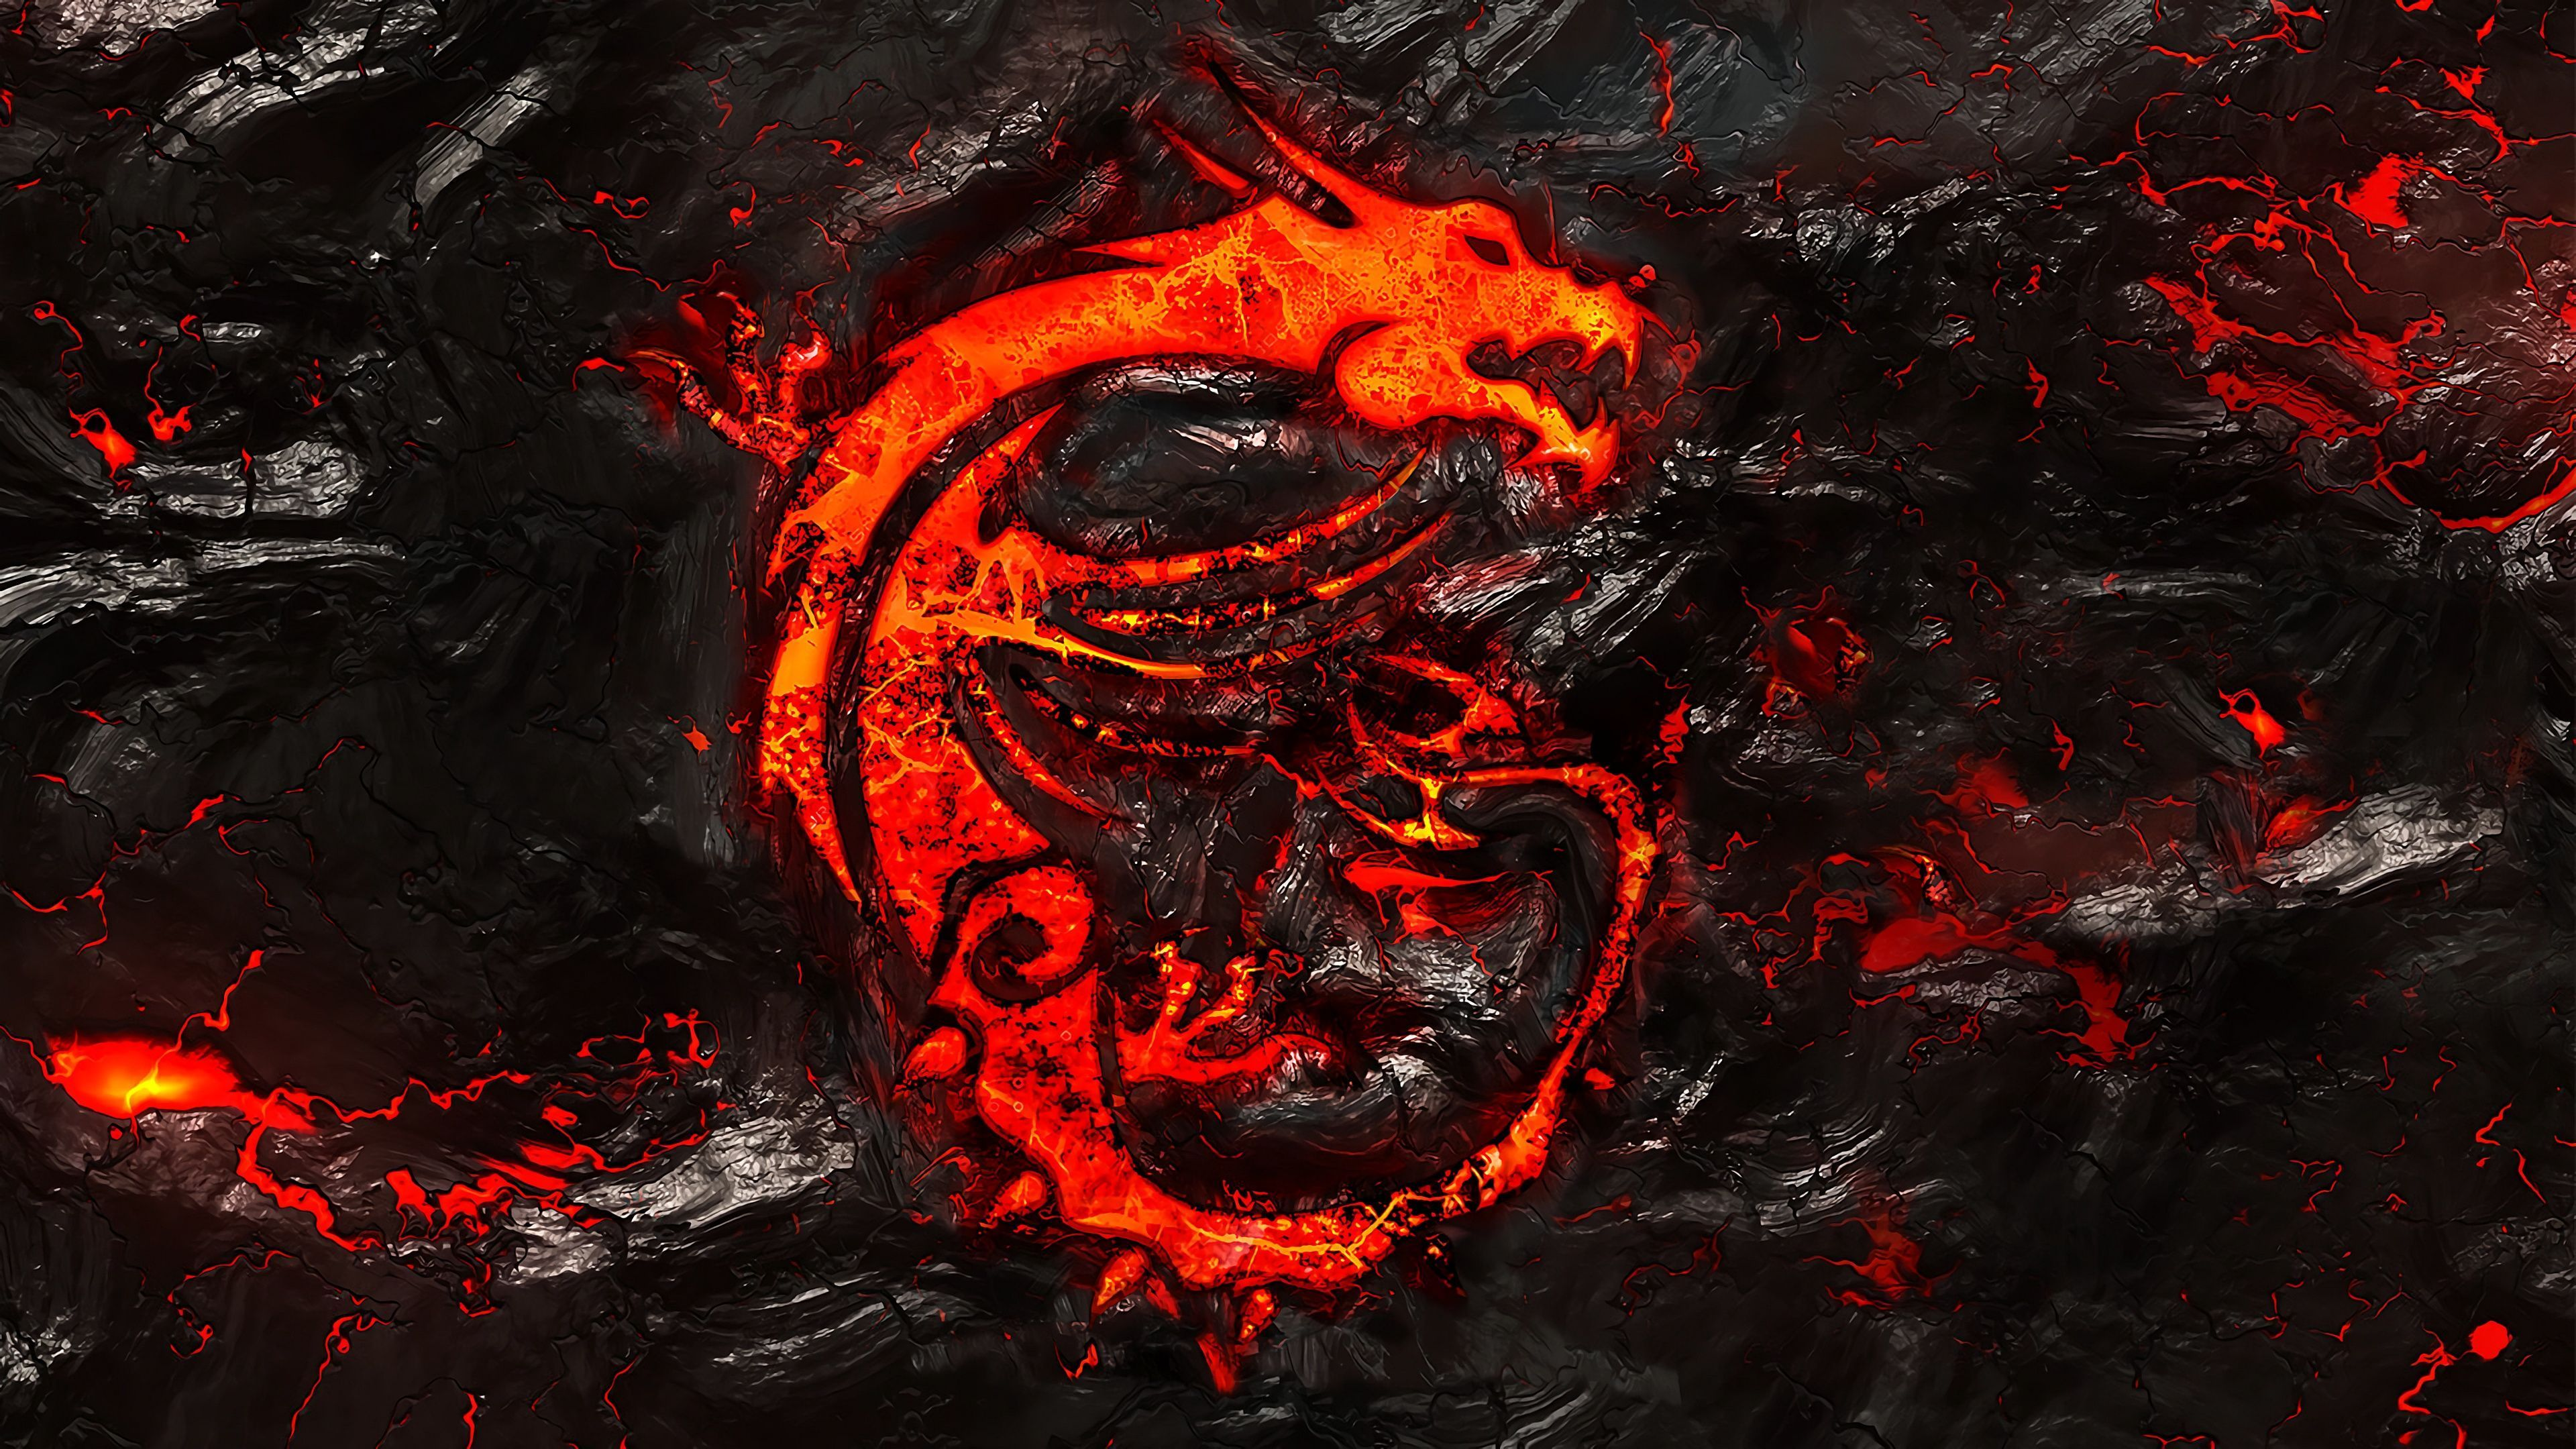 3840x2160 Msi Dragon Logo Burning Lava Background 4k Wallpaper Msi Laptop Wallpaper Wallpaper Pc Gaming Wallpapers